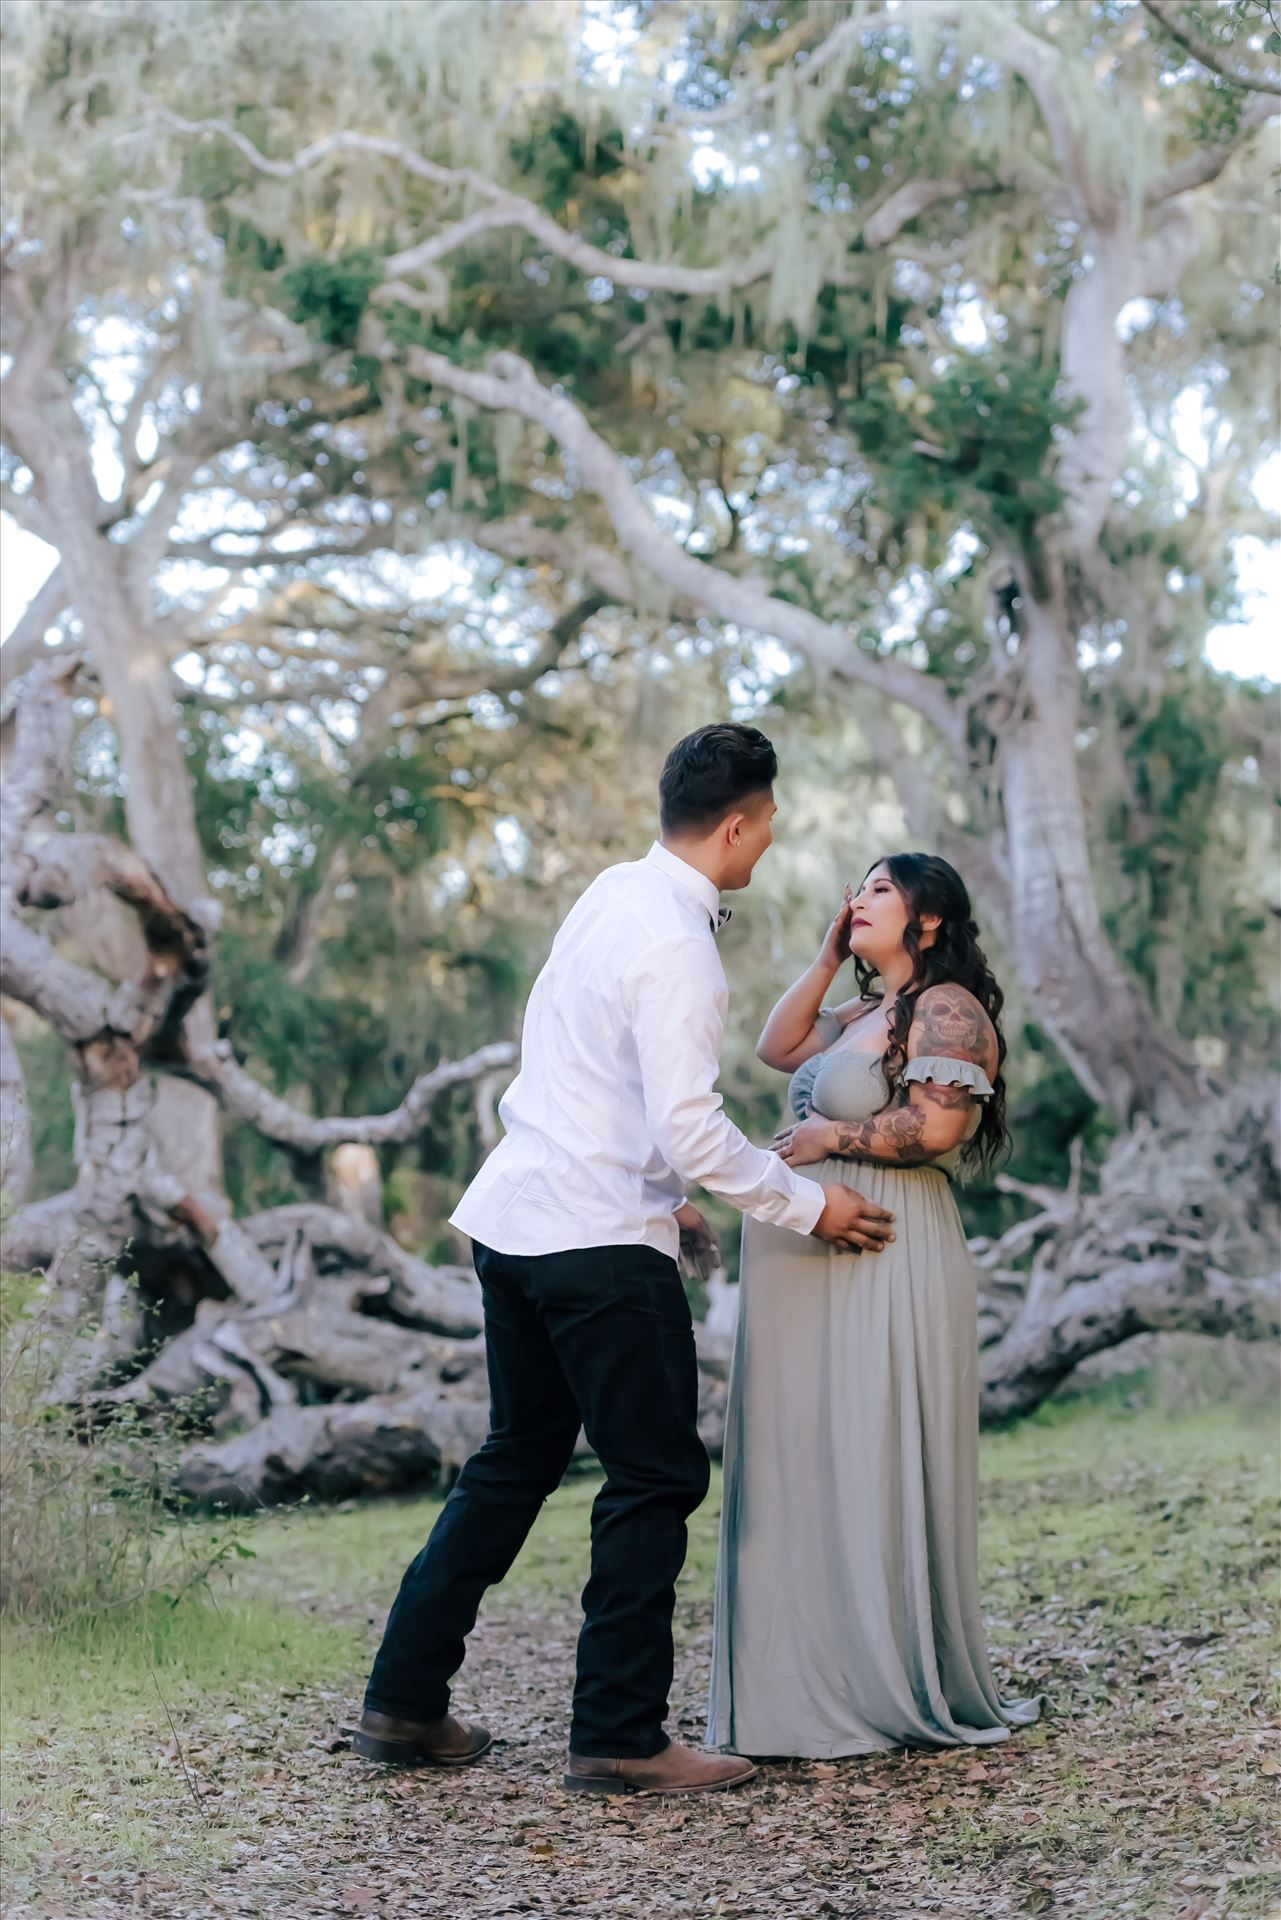 Mariah and Devin 045  by Sarah Williams